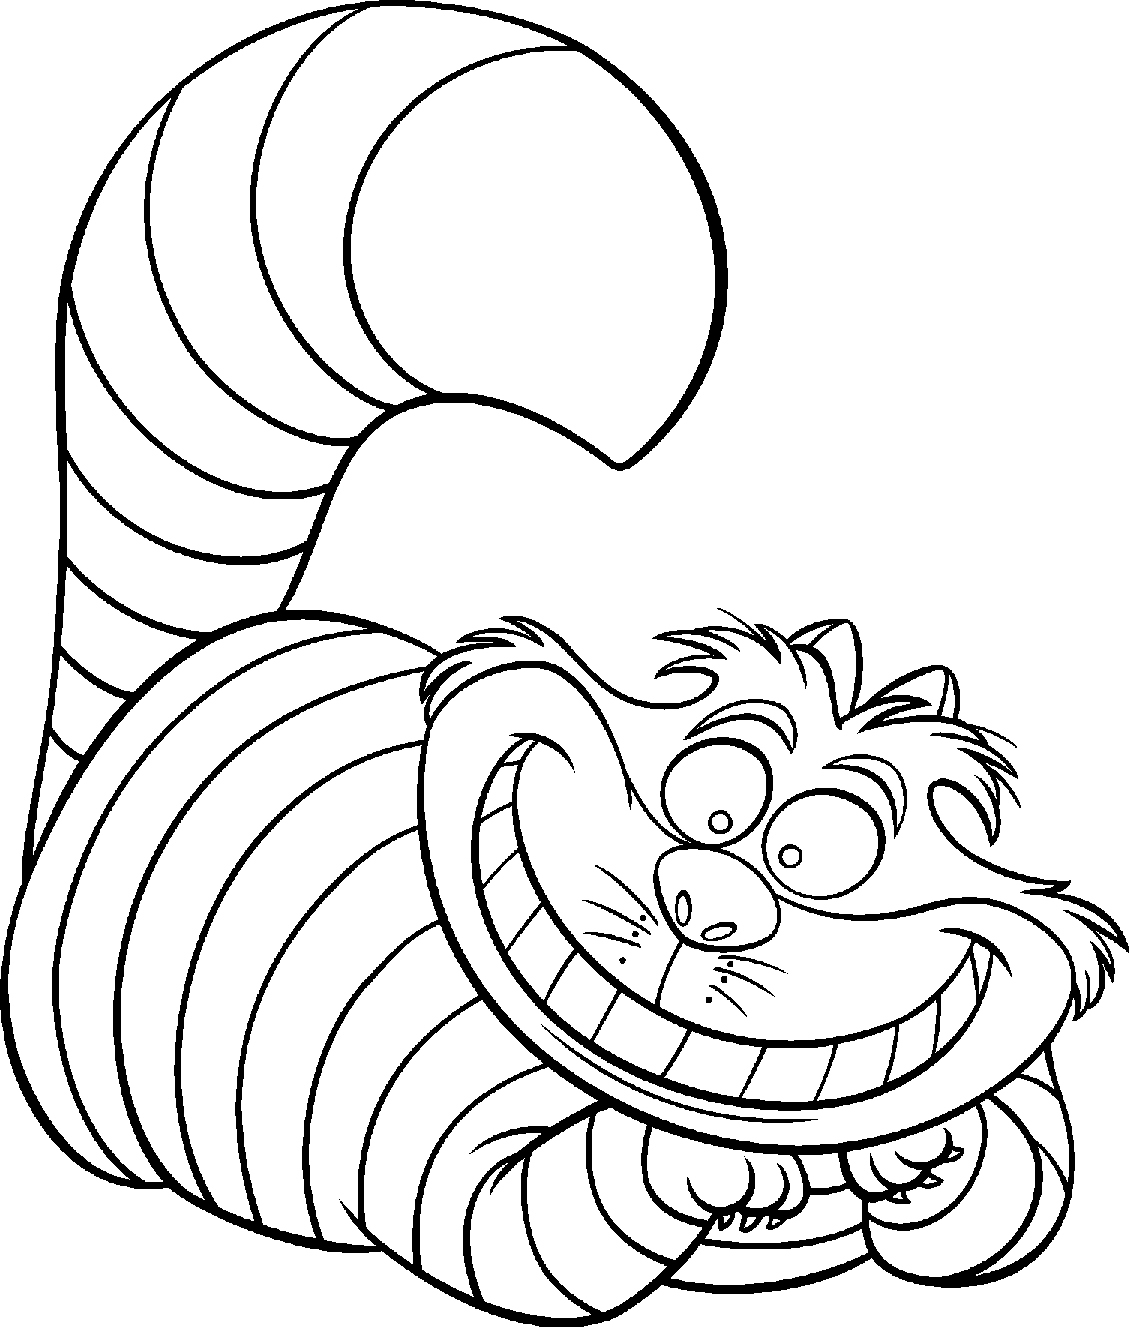 kids cool coloring pages - photo#23